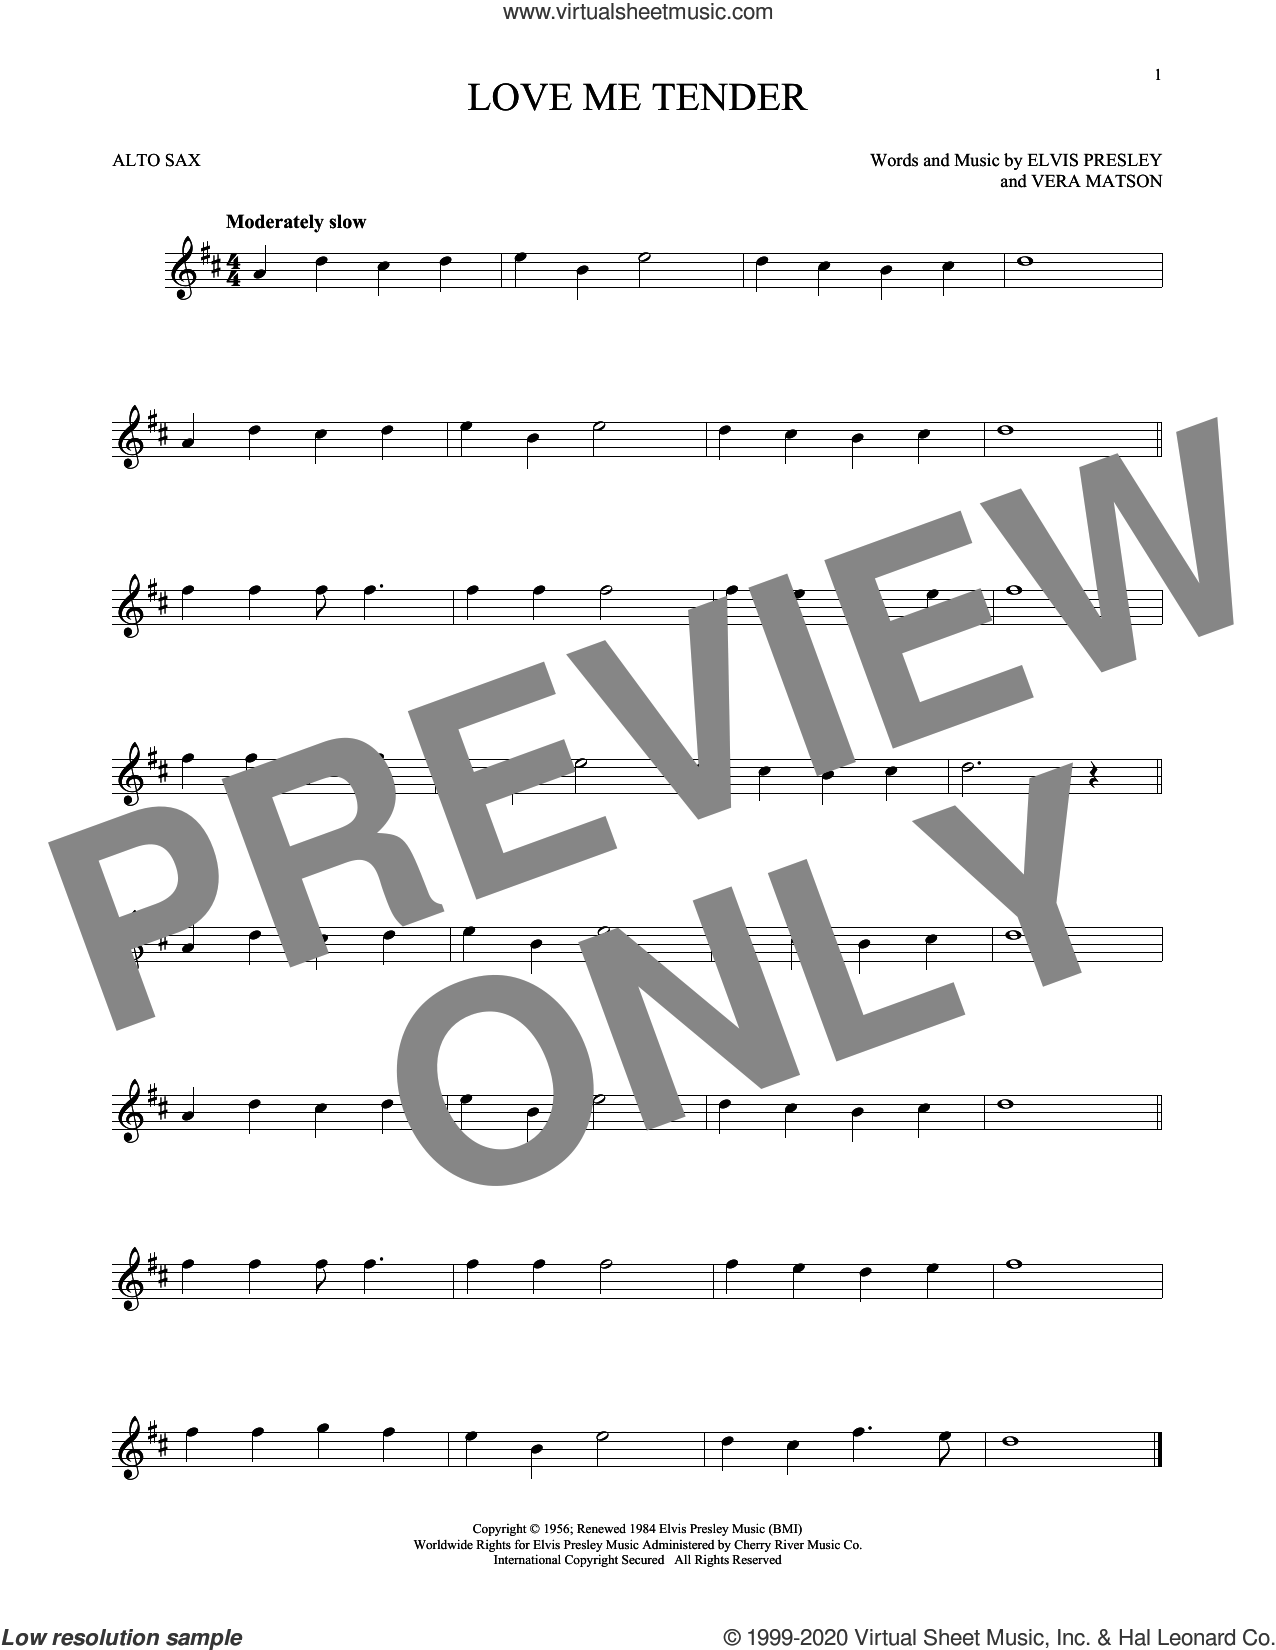 Love Me Tender sheet music for alto saxophone solo by Elvis Presley and Vera Matson, intermediate skill level